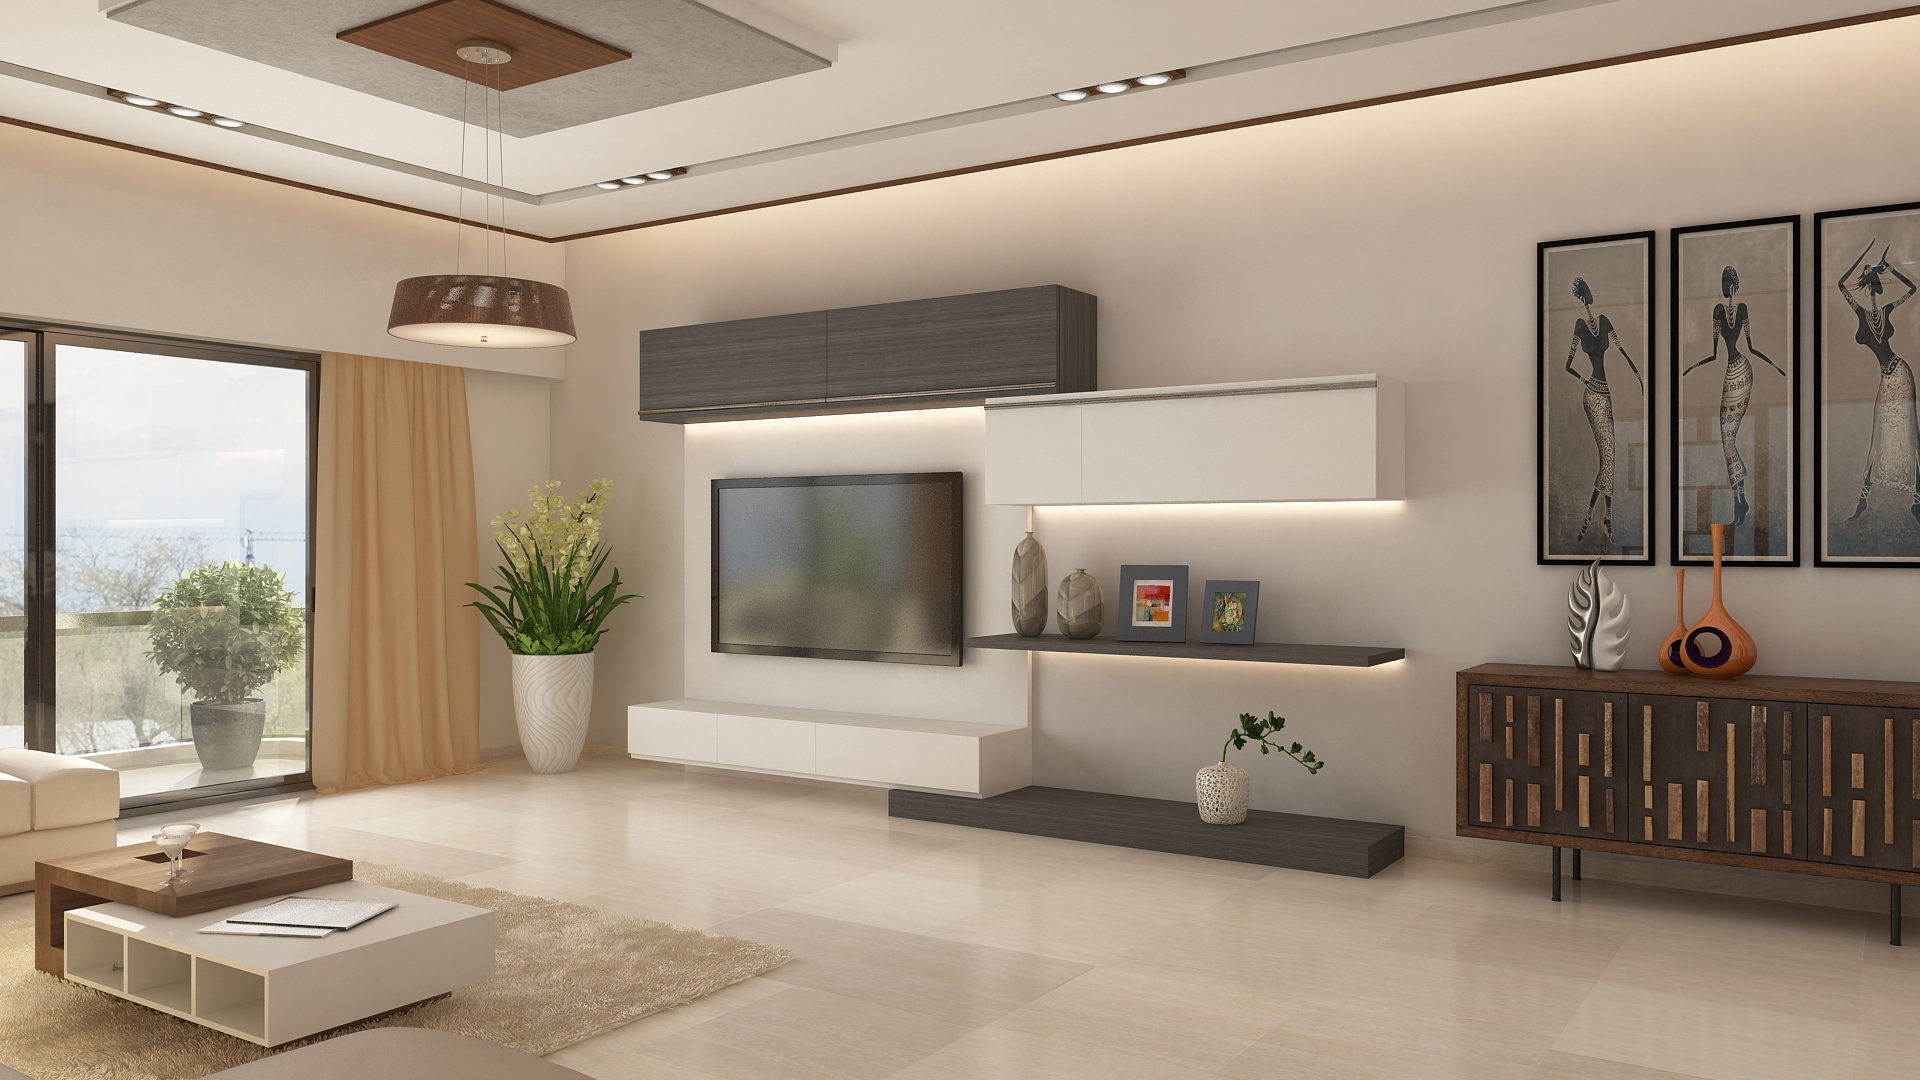 . Ghar360 Portfolio   2 BHK Apartment Interior Design in Jp Nagar